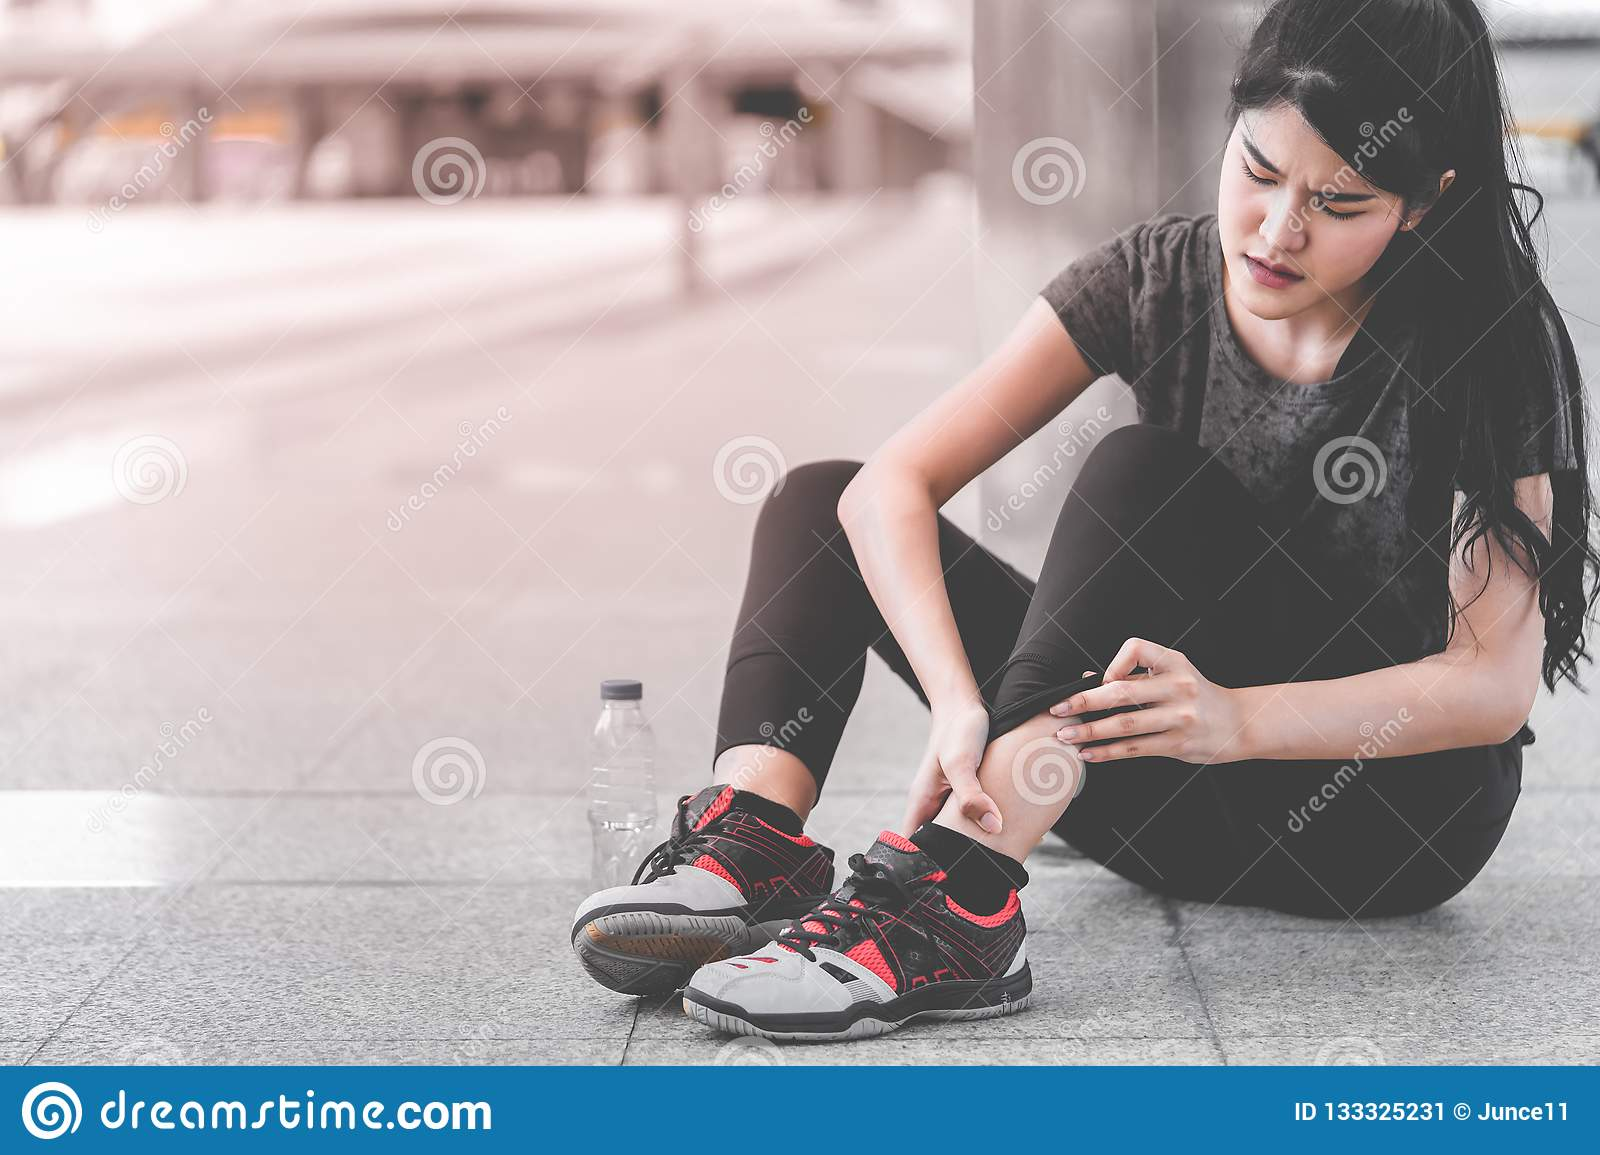 Sport woman having an injury on her ankle foot